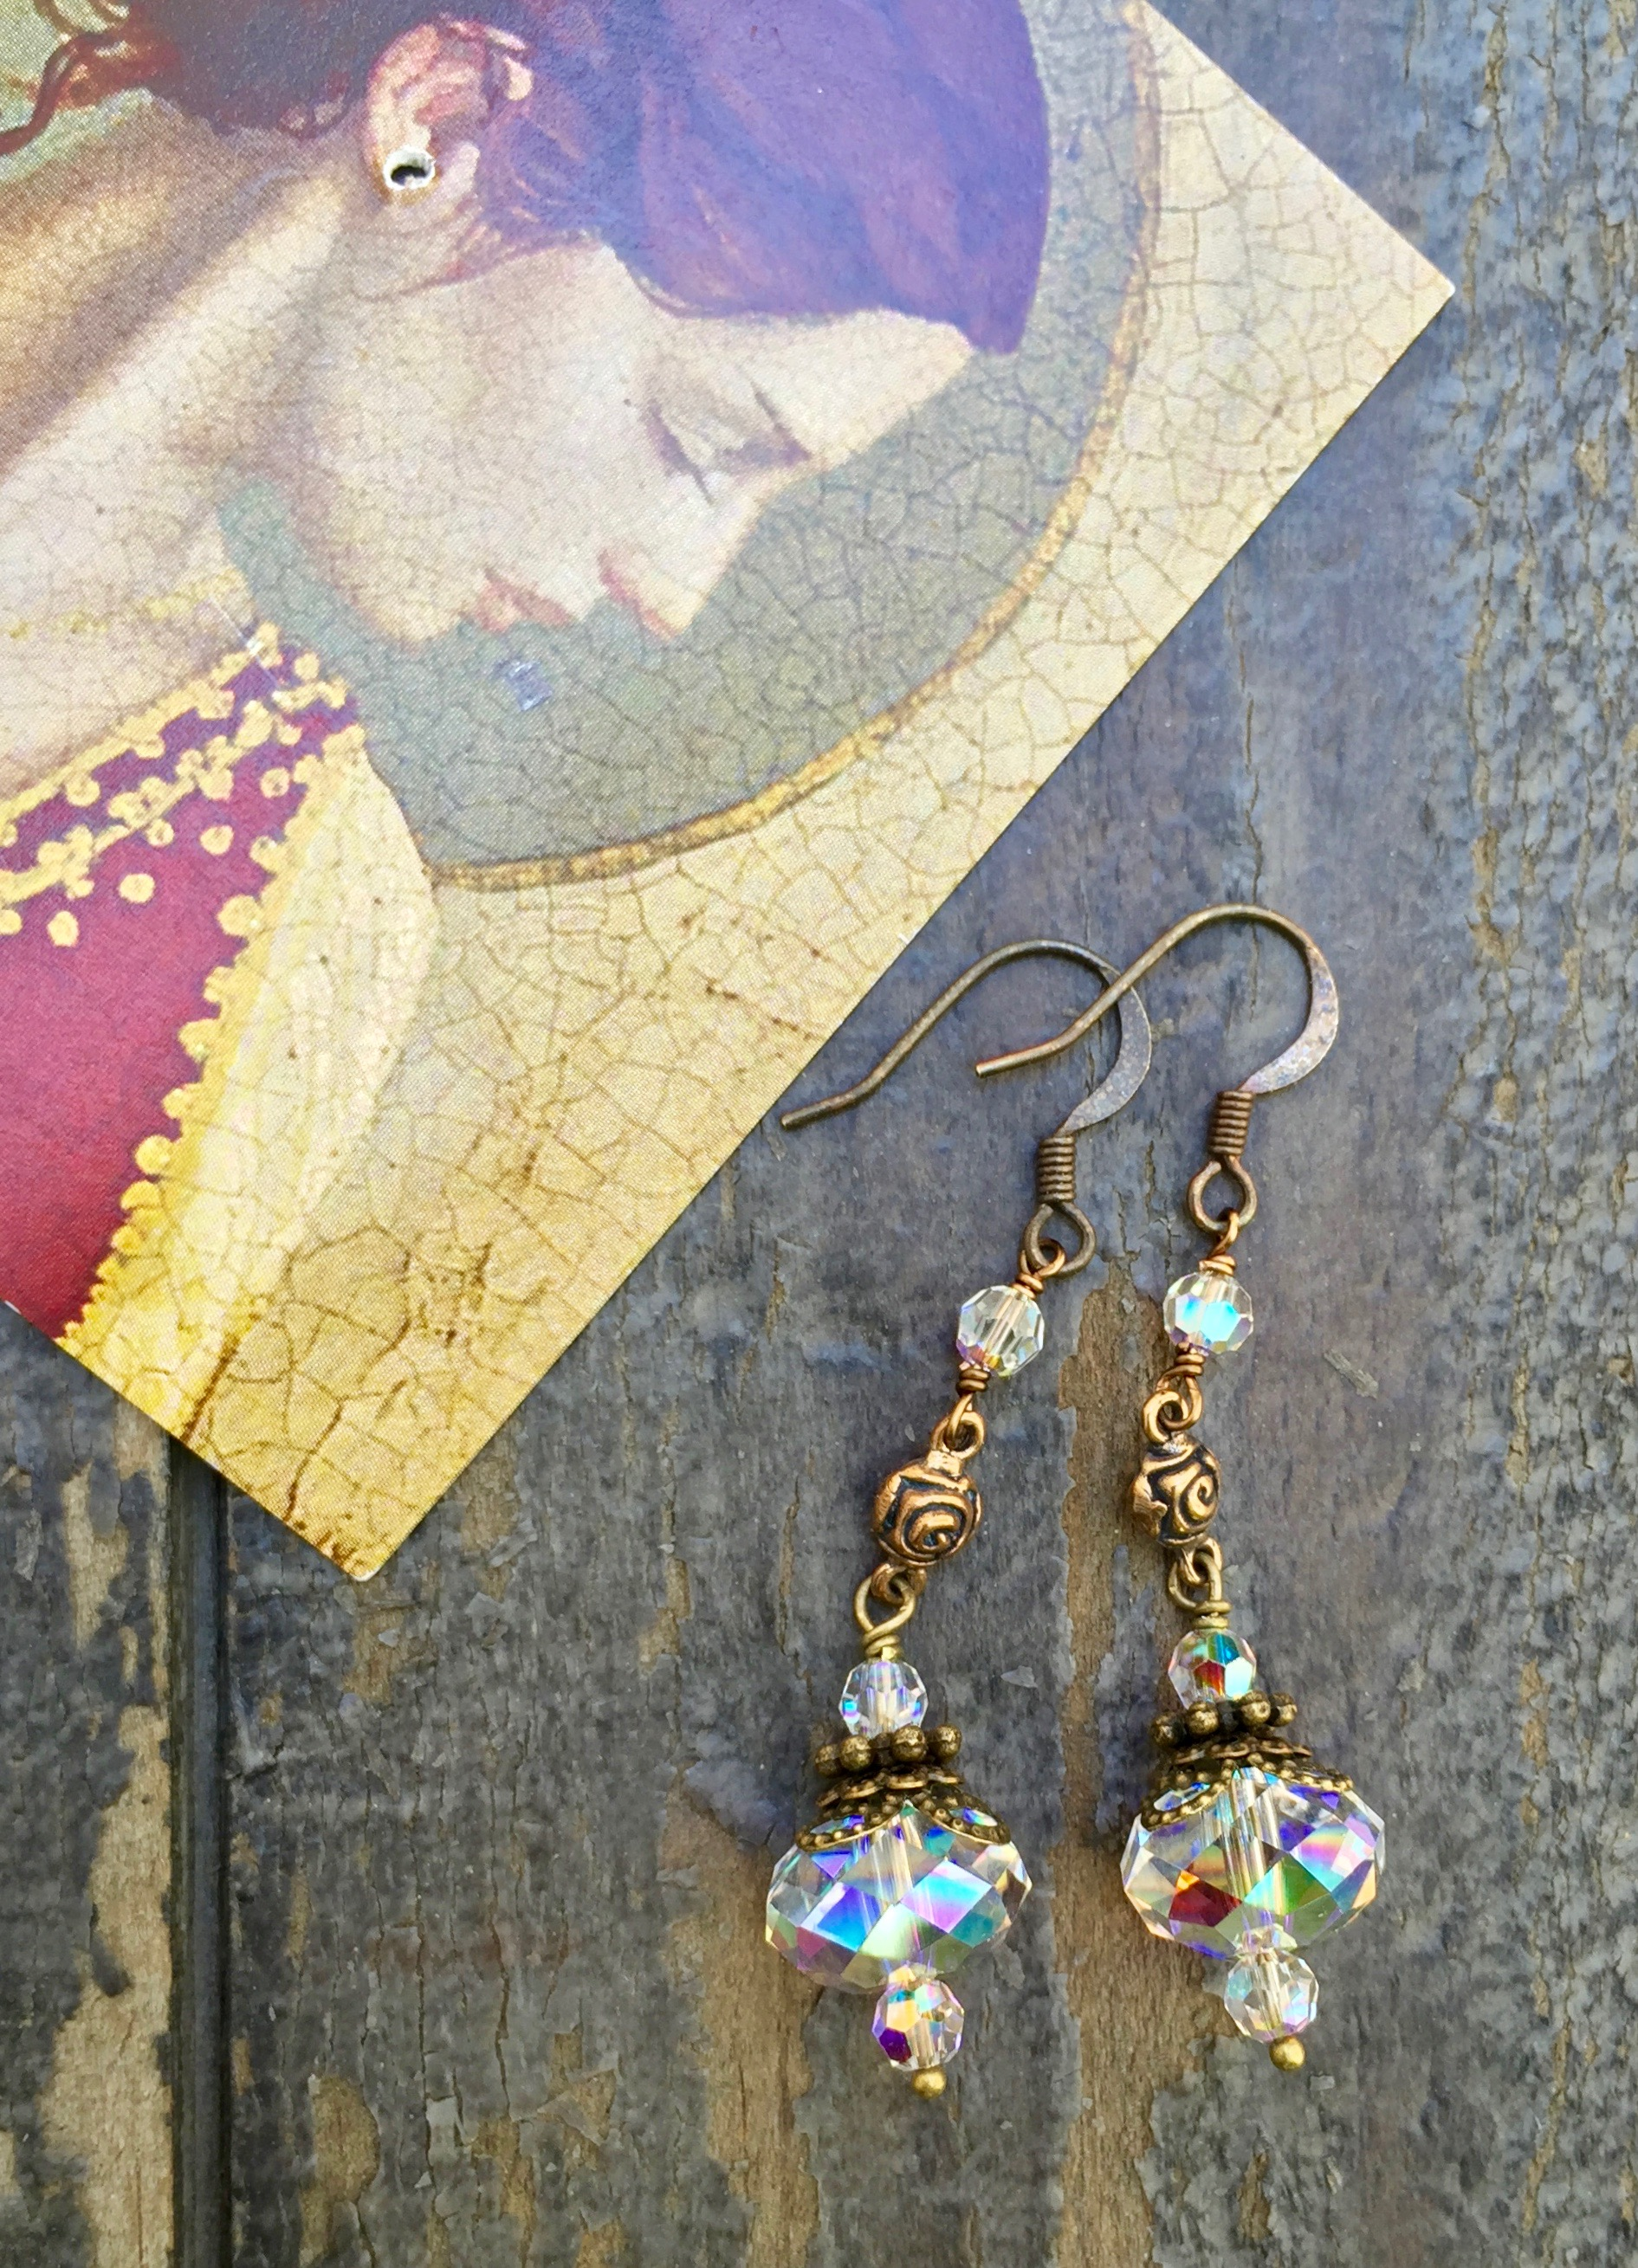 EARRINGS OF DIVINE GRACE